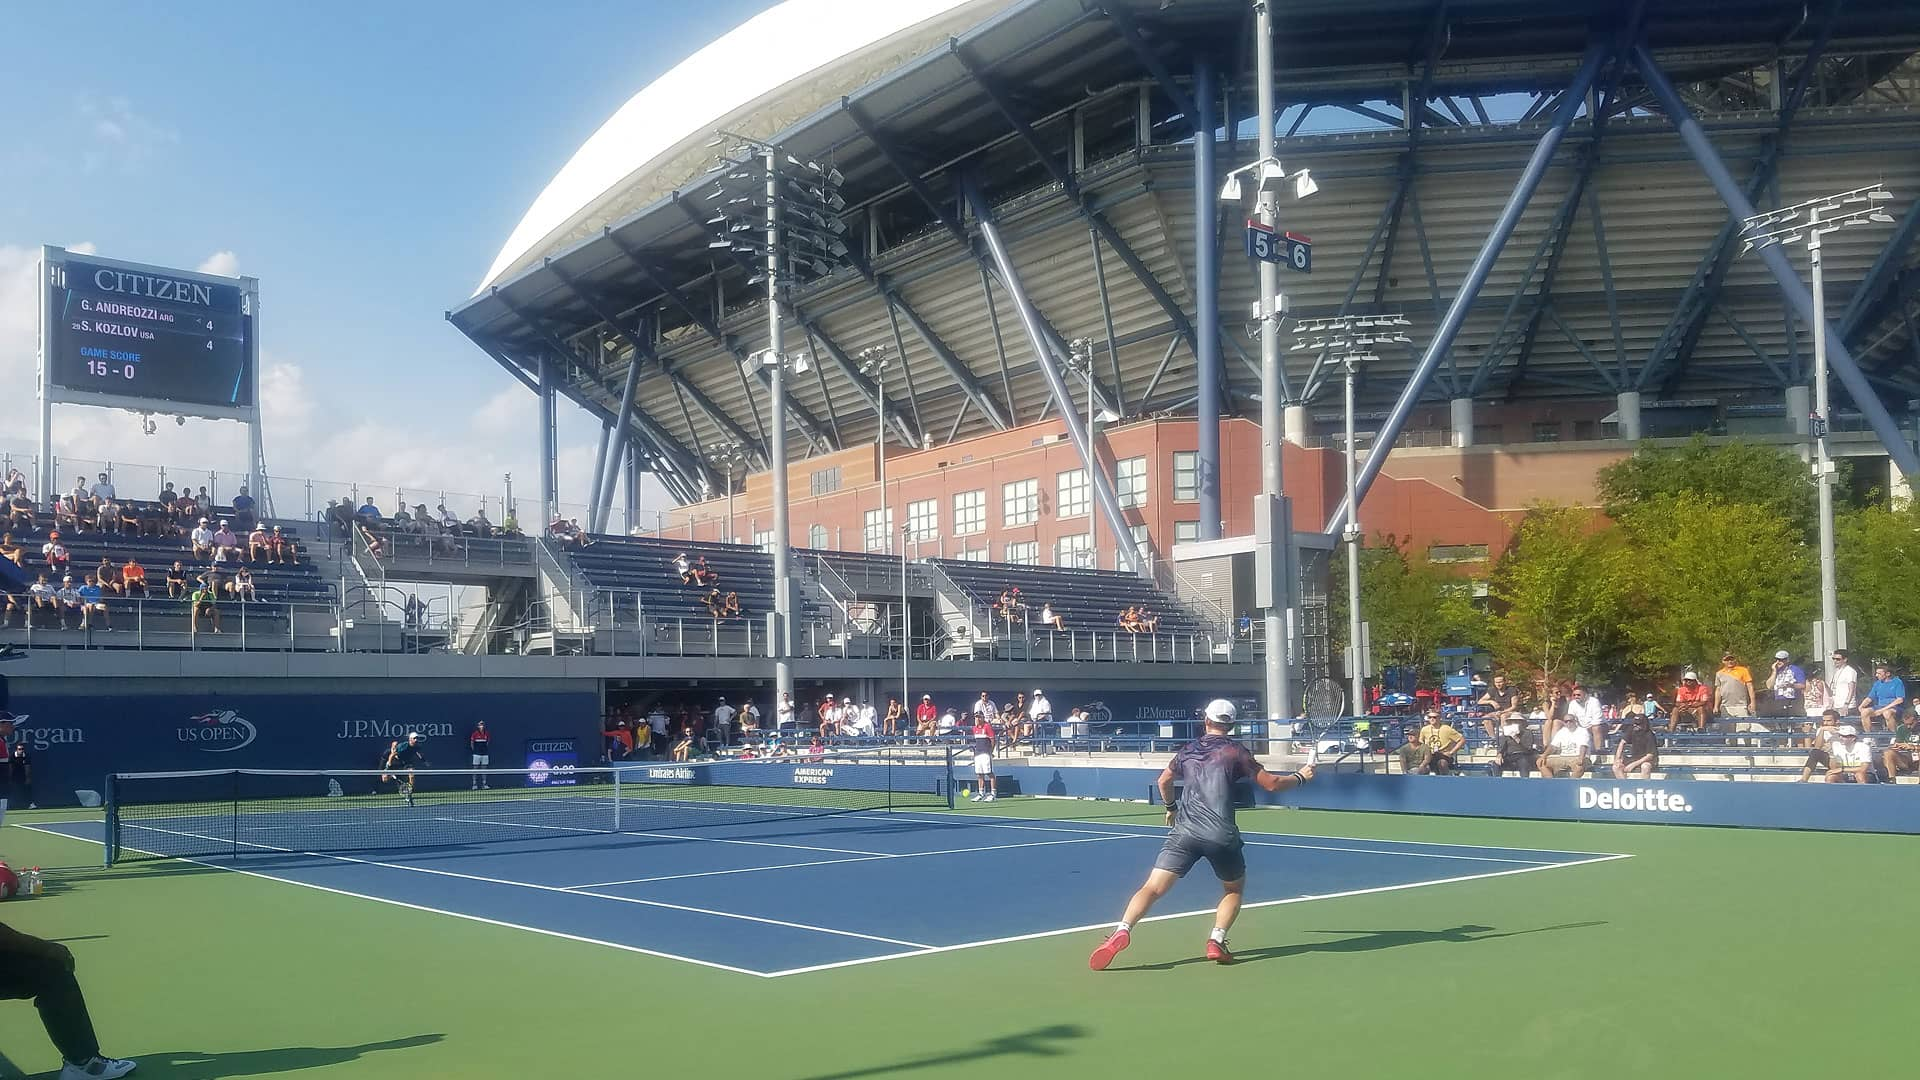 Finding Kosher Food The US OPEN Tennis In Queens NY Alltime - Us open grounds map 2017